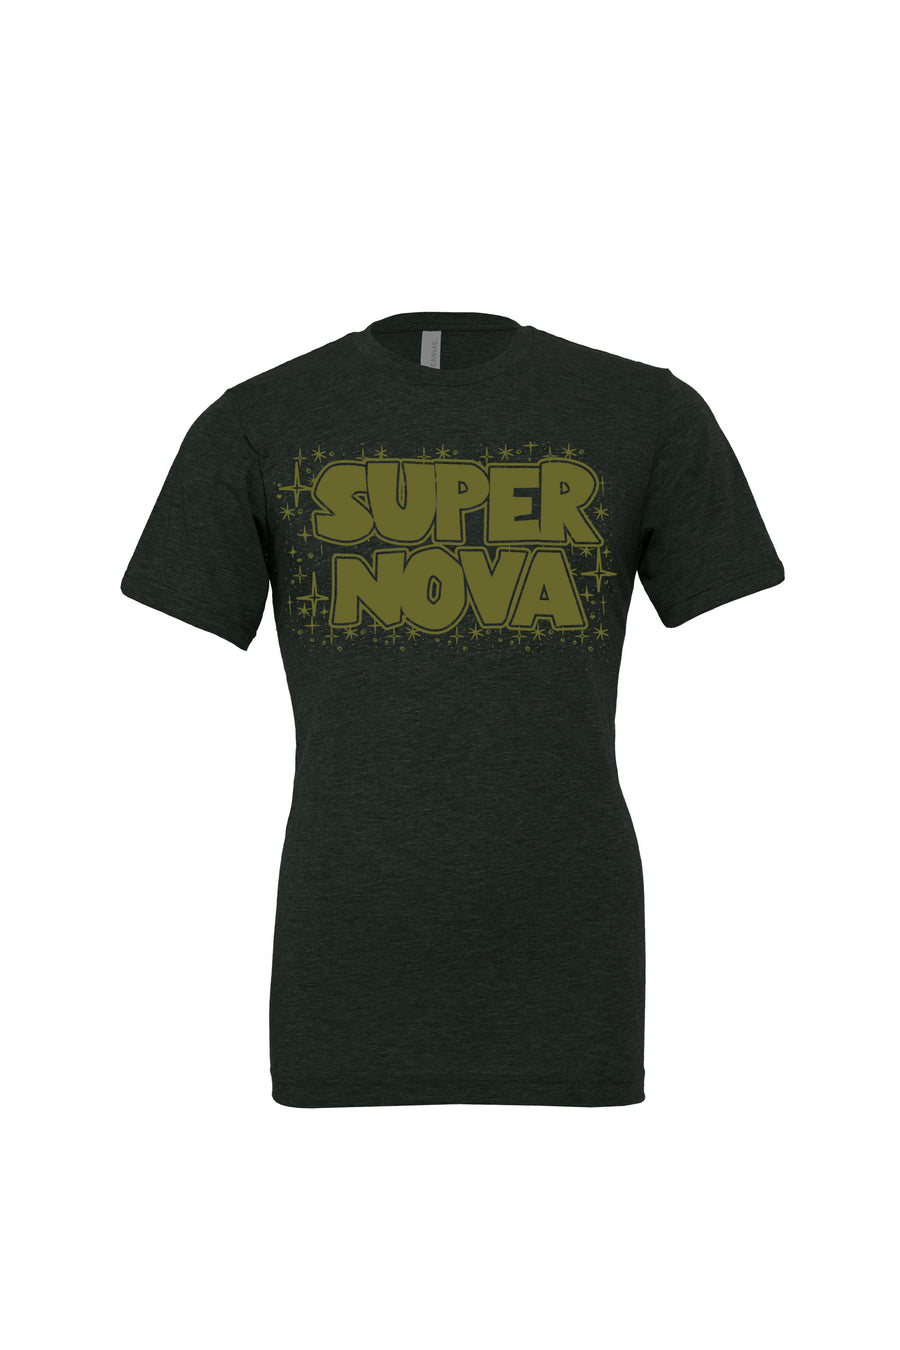 womens supernova, space tshirt, mama feelsgood